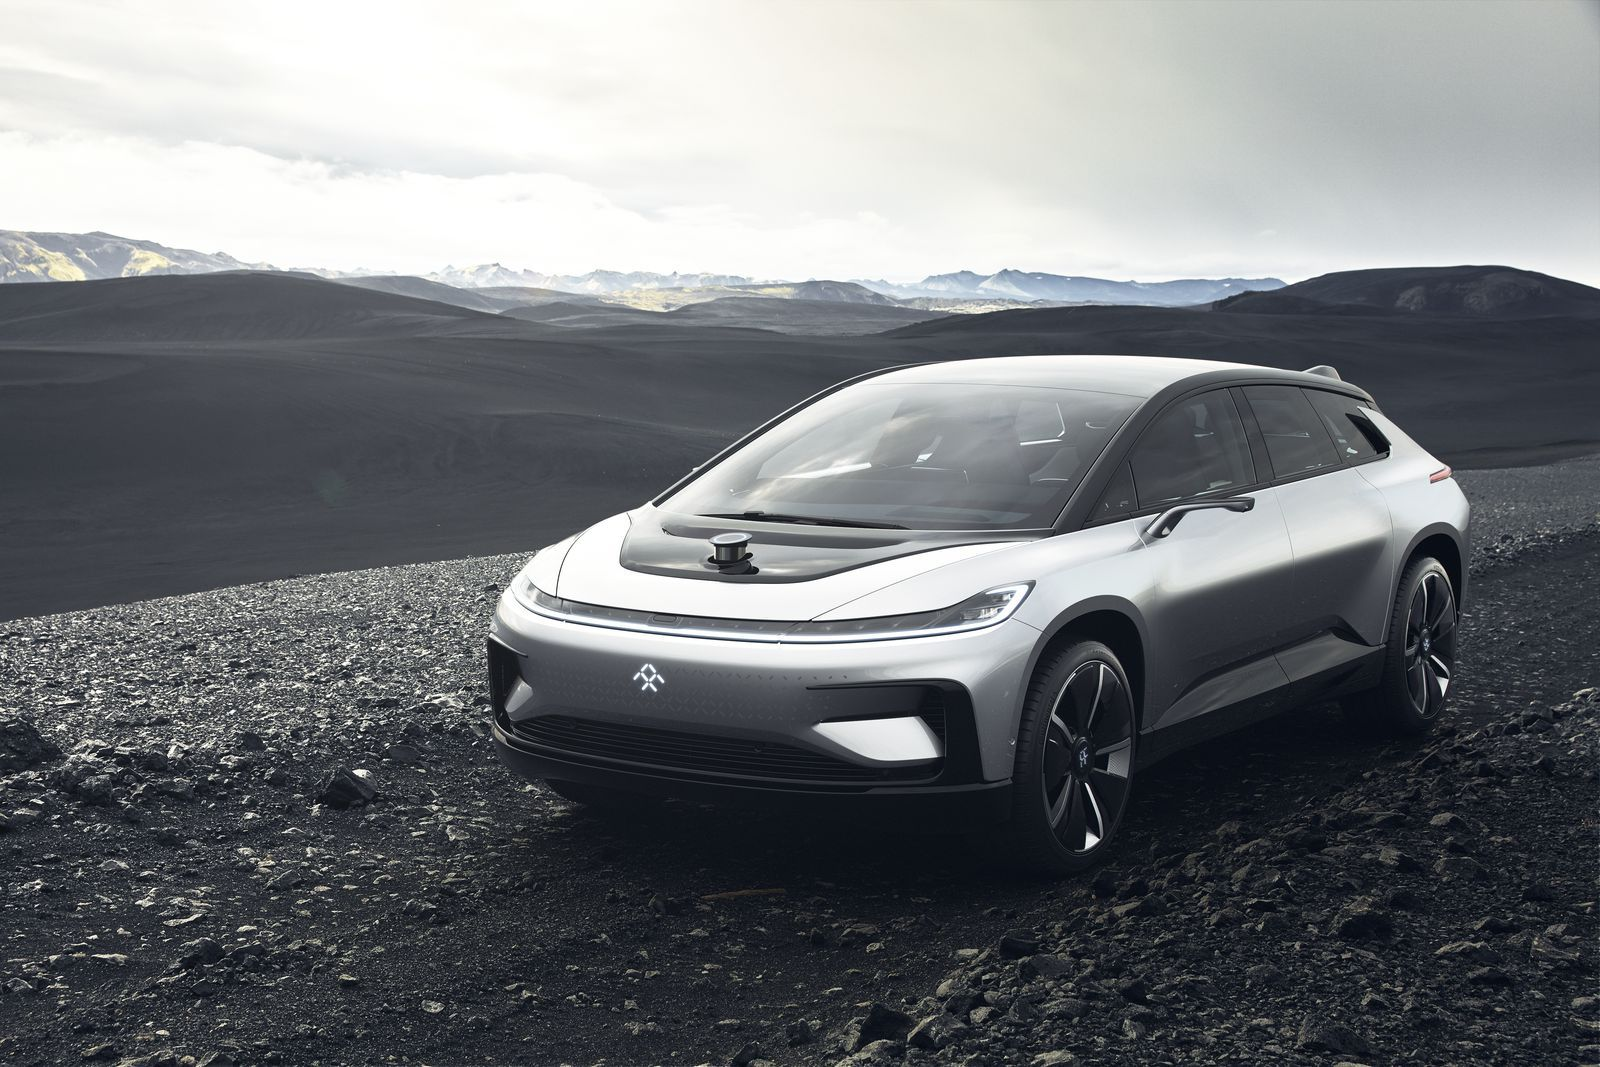 Faraday Future S First Car The Ff91 Is Here Faraday Future Future Electric Cars Electric Crossover